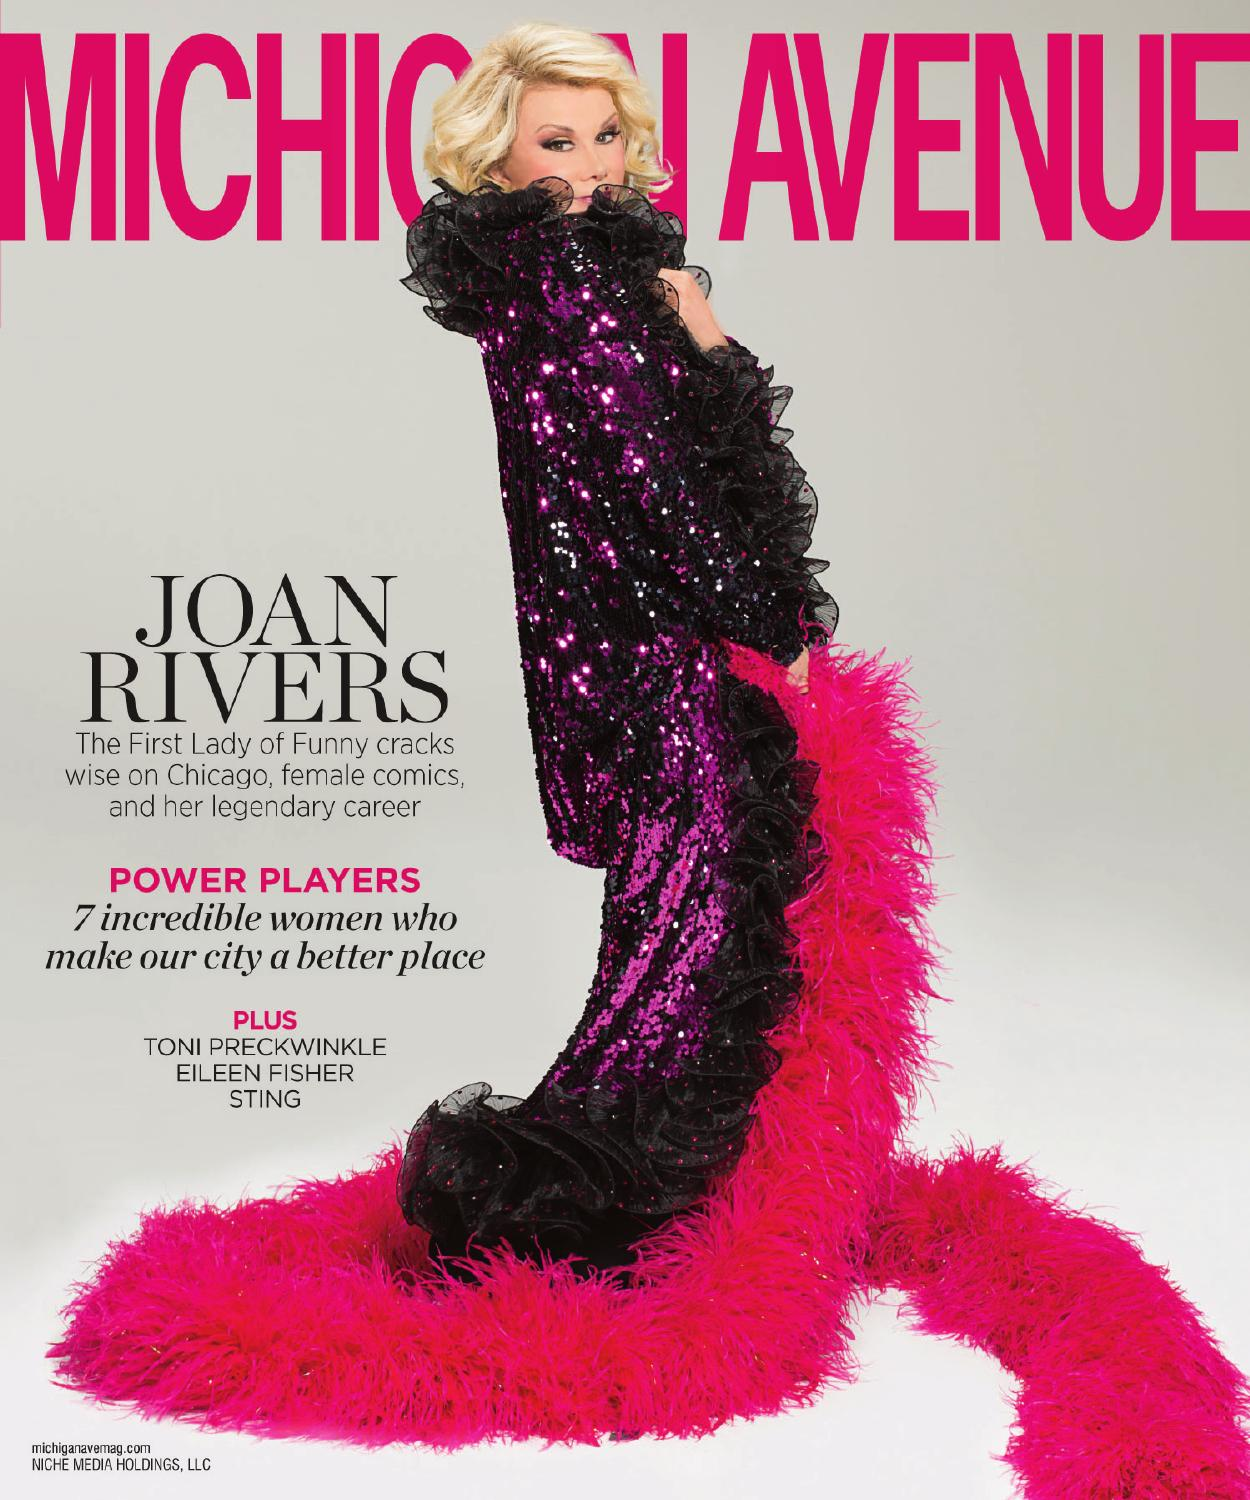 Michigan Avenue 2014 Issue 3 May June By Niche Media Holdings Dr Kevin Women Boot Casual Shoes 4023 Navy 38 Llc Issuu